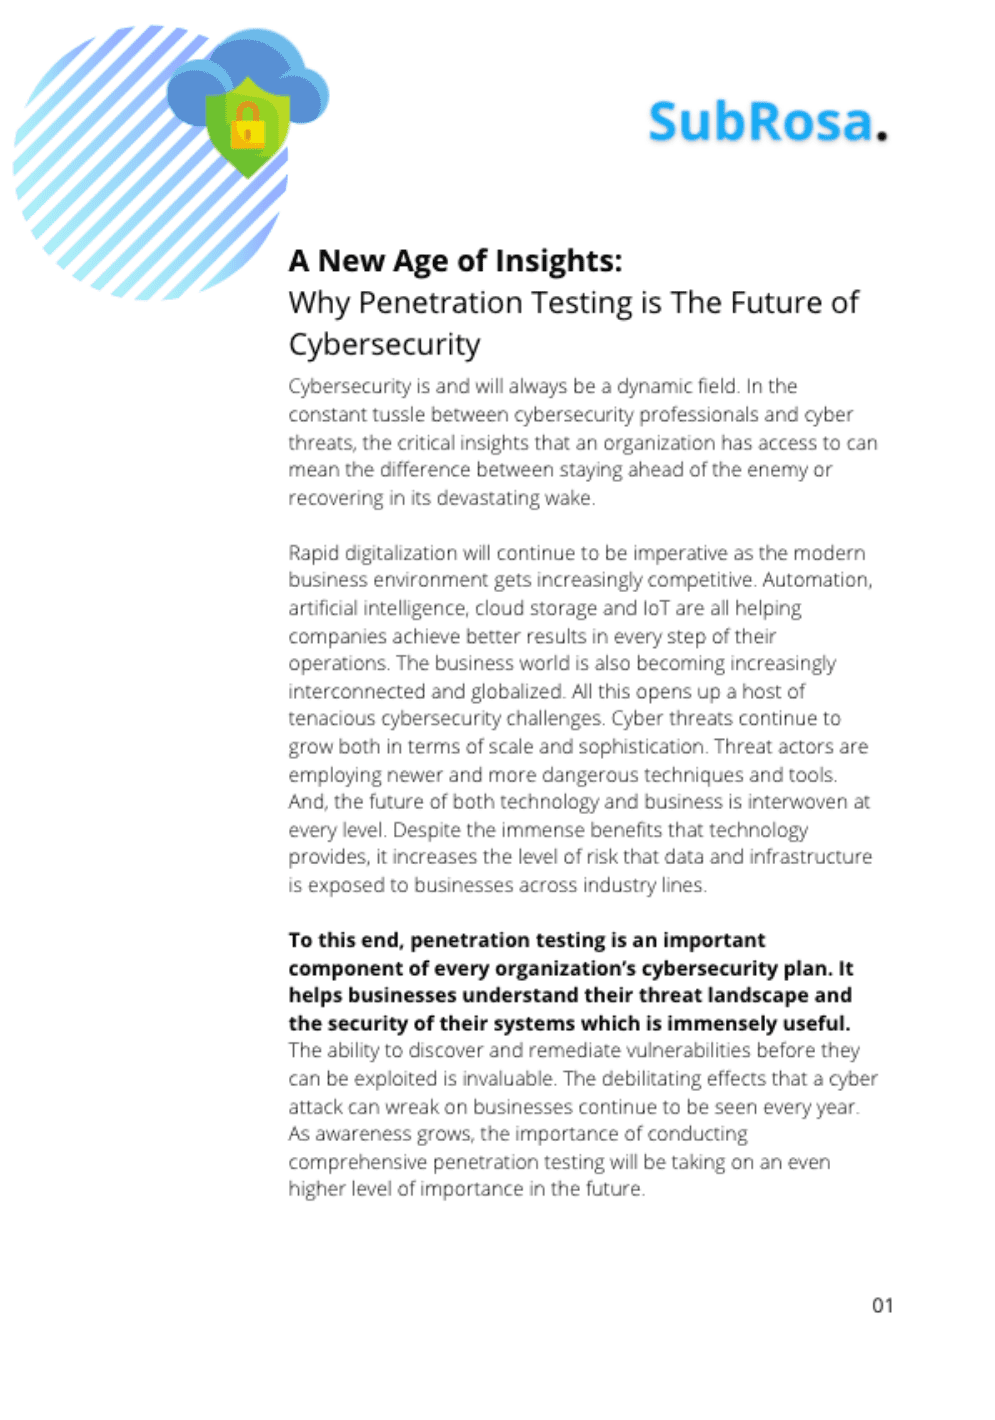 A new age of insights thumbnail